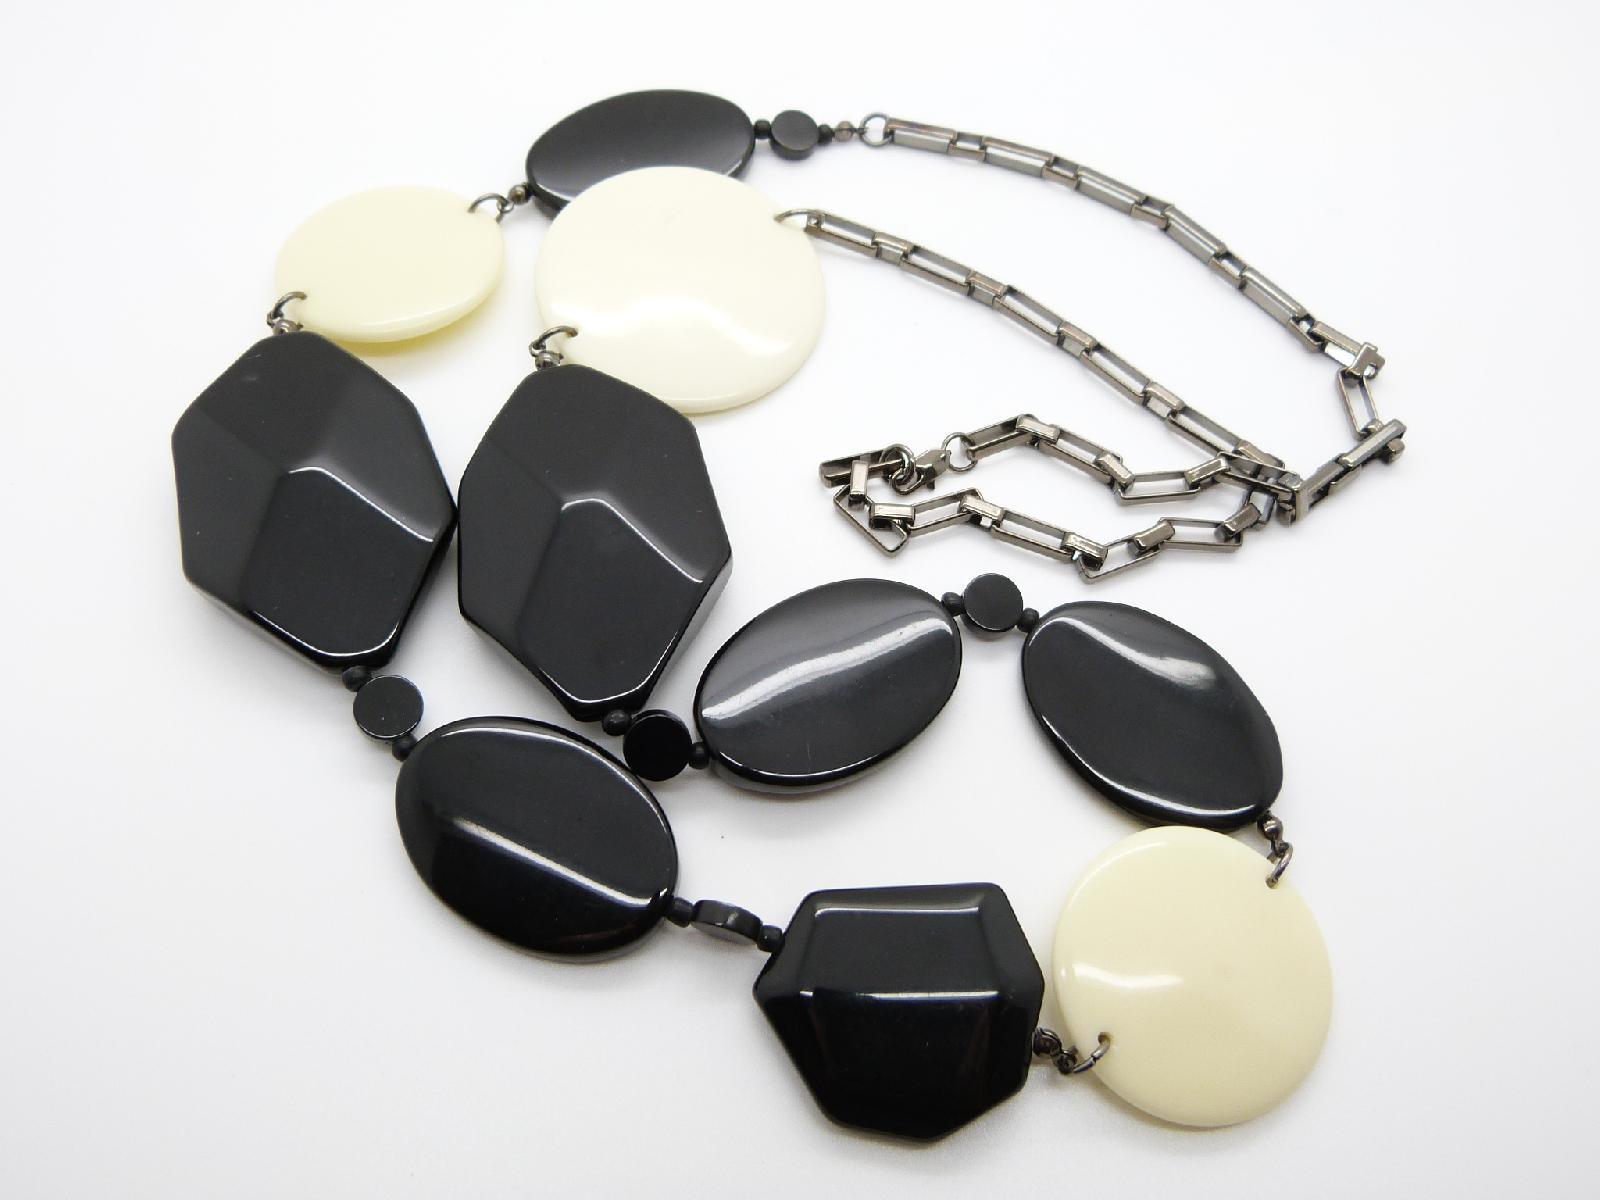 £24.00 - Stylish and Contemporary Black and Cream Plastic Bead Metal Chain Necklace